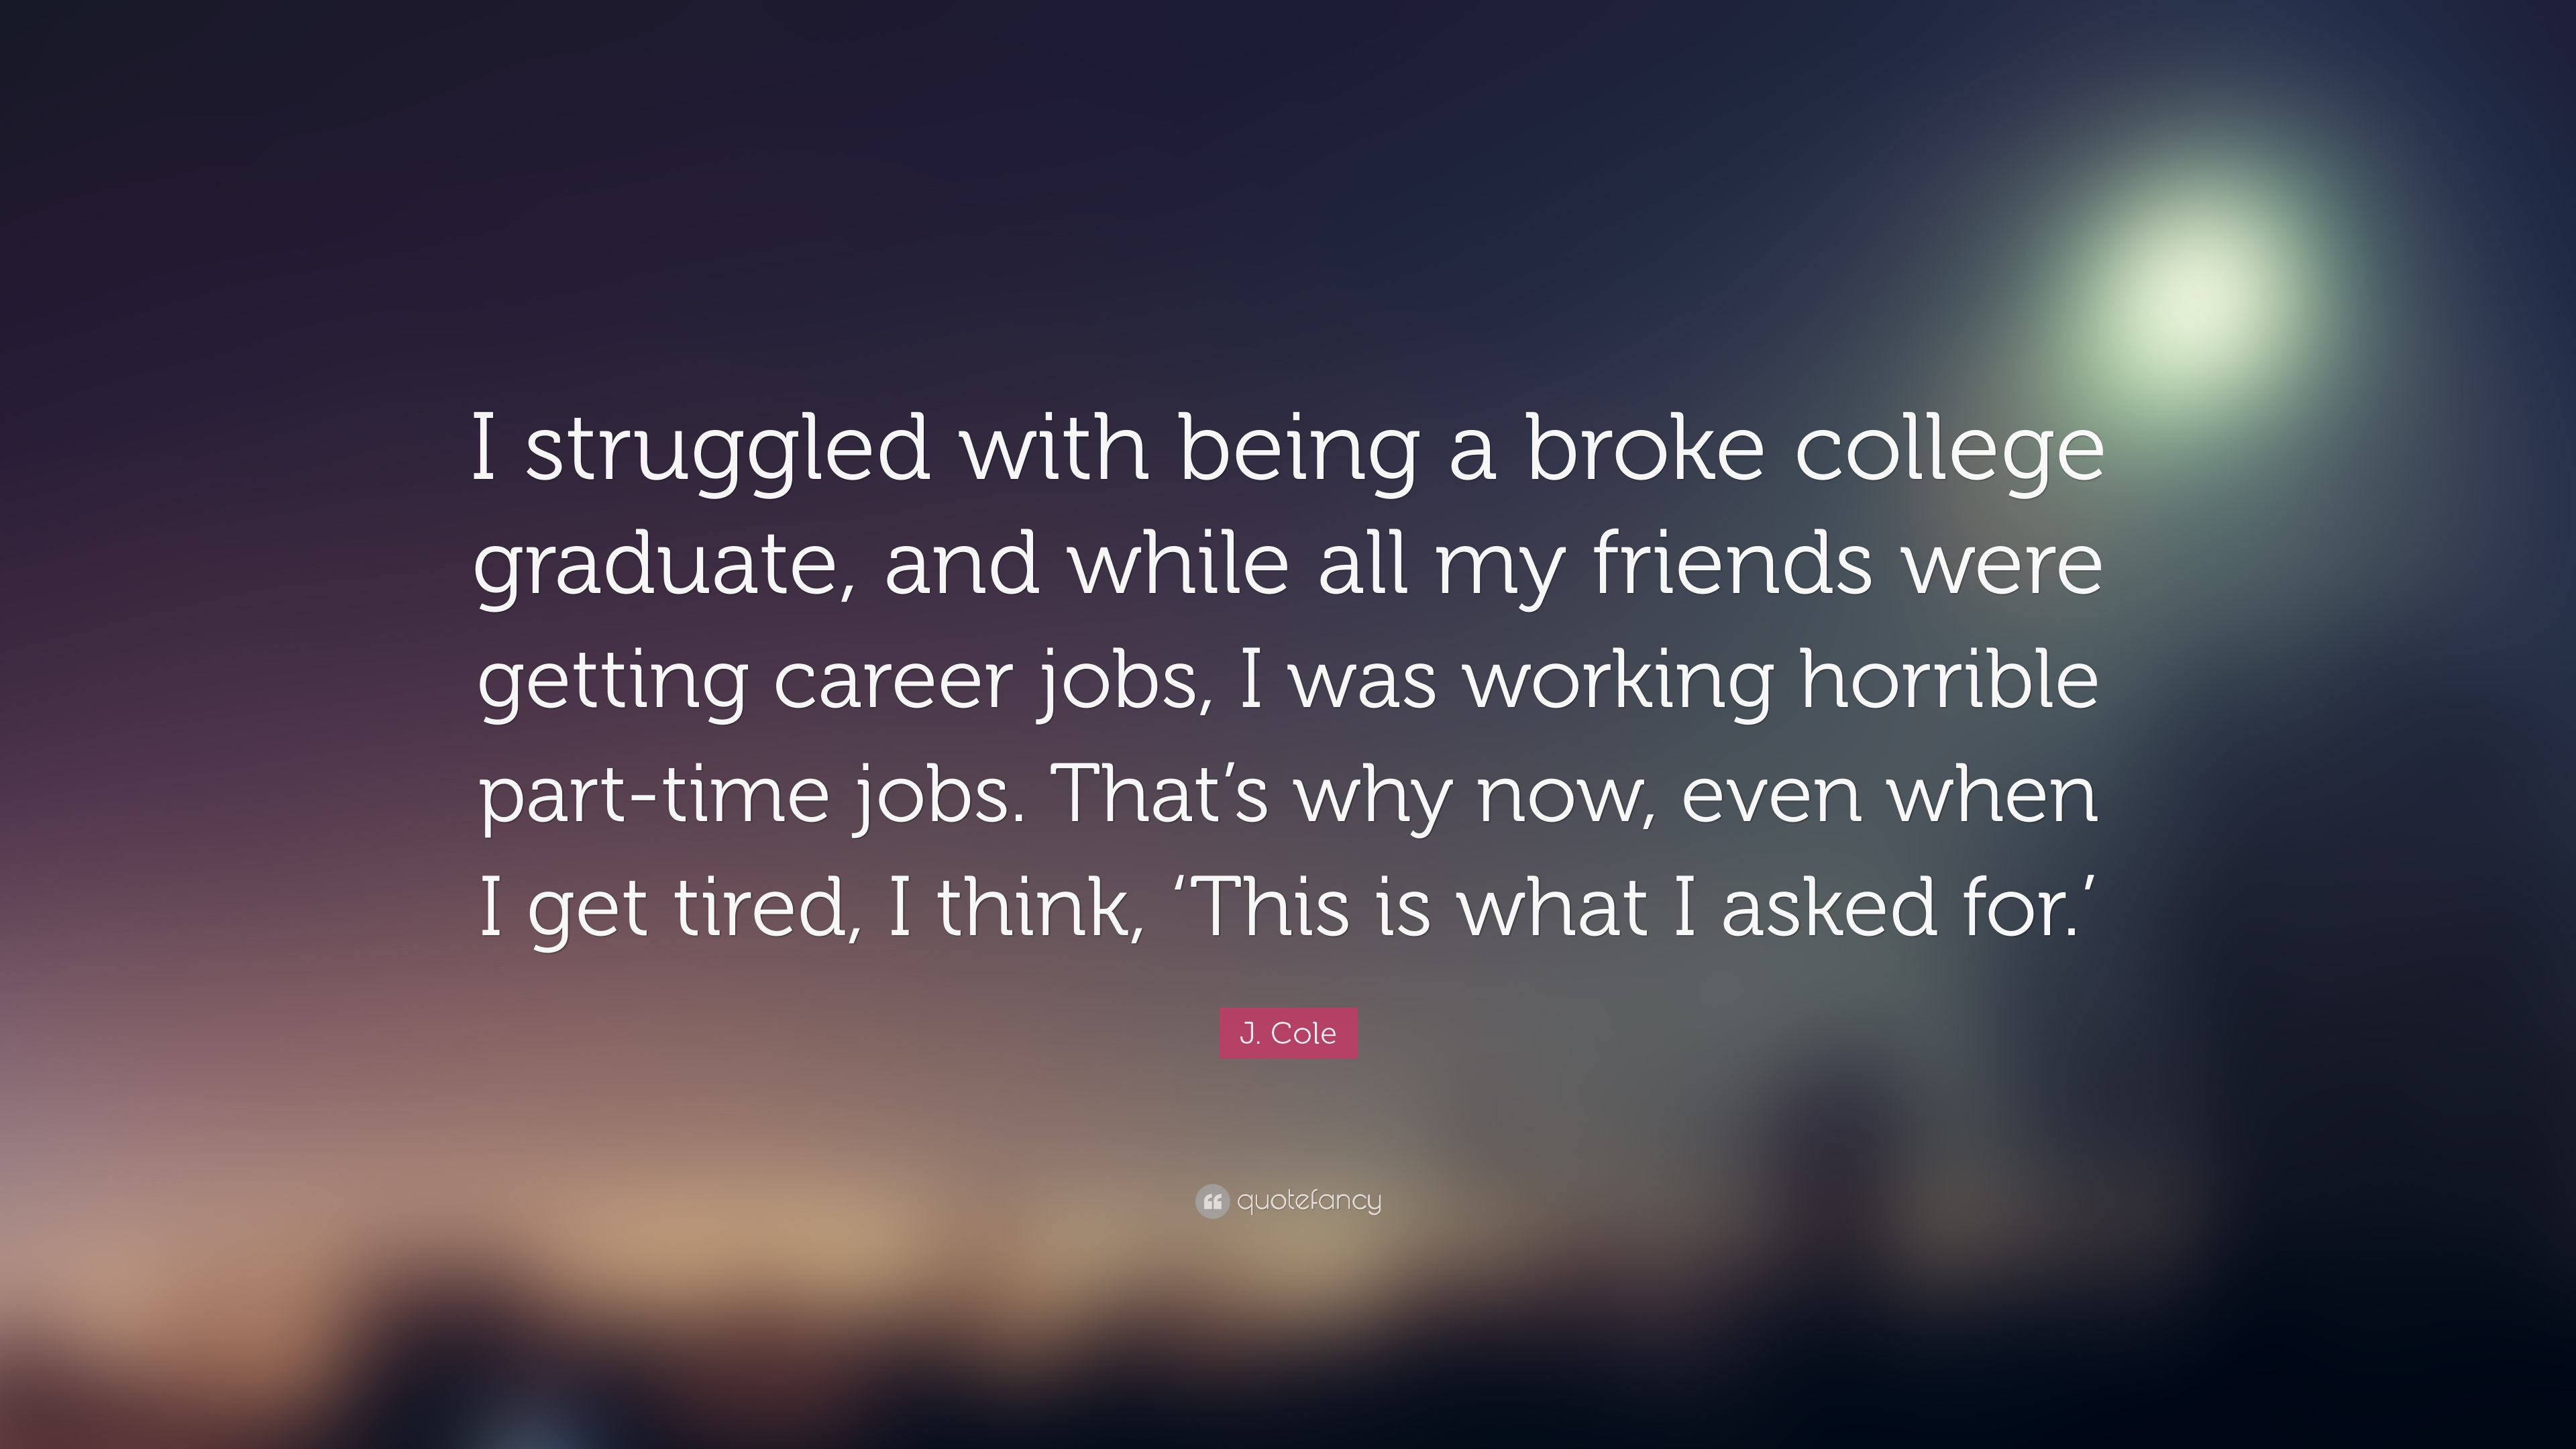 j cole quote i struggled being a broke college graduate j cole quote i struggled being a broke college graduate and